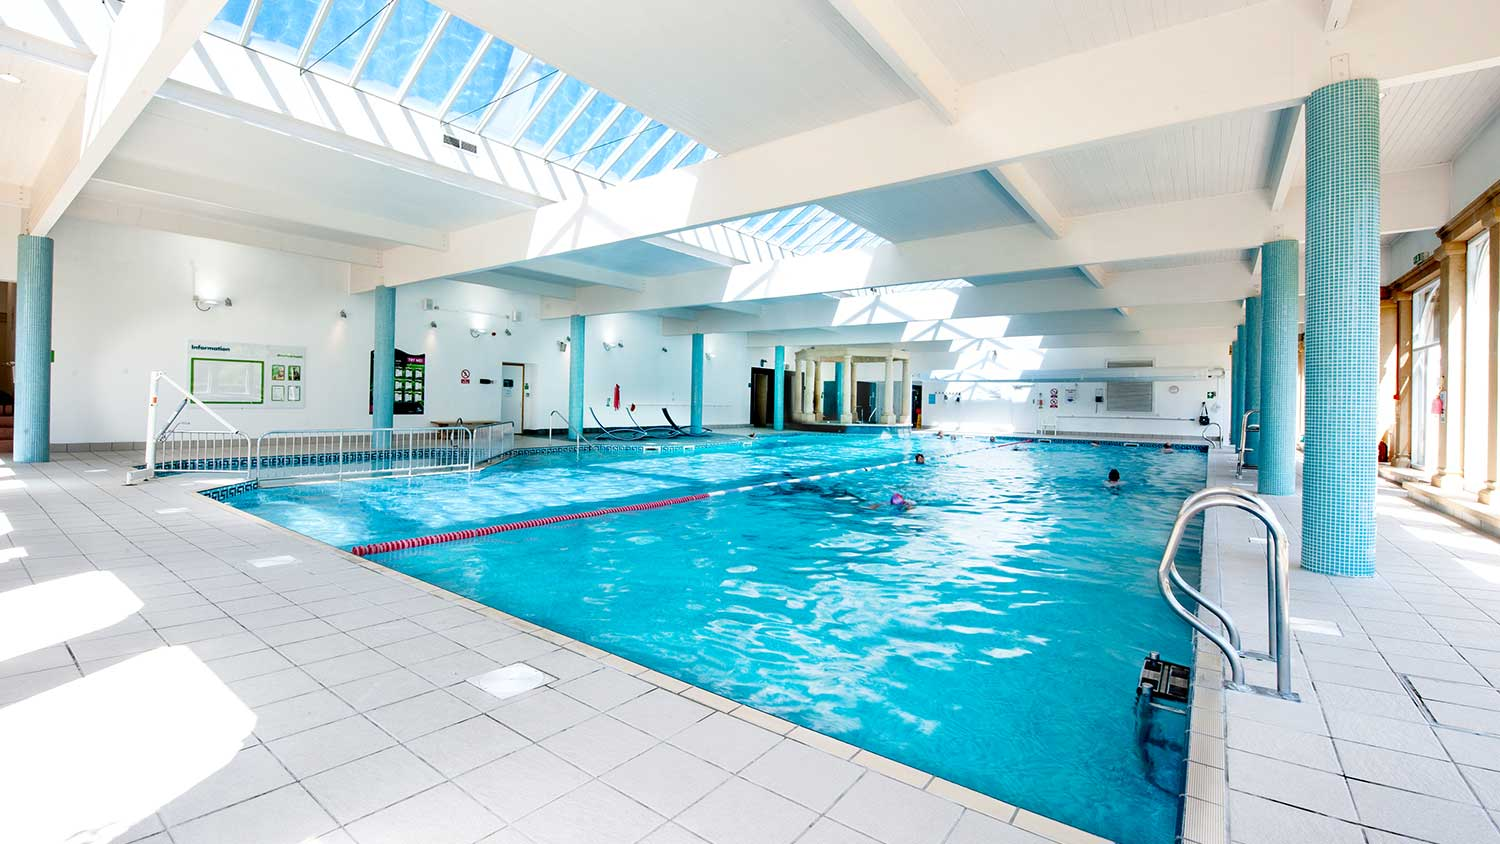 Gym In Cottingley Fitness Wellbeing Nuffield Health